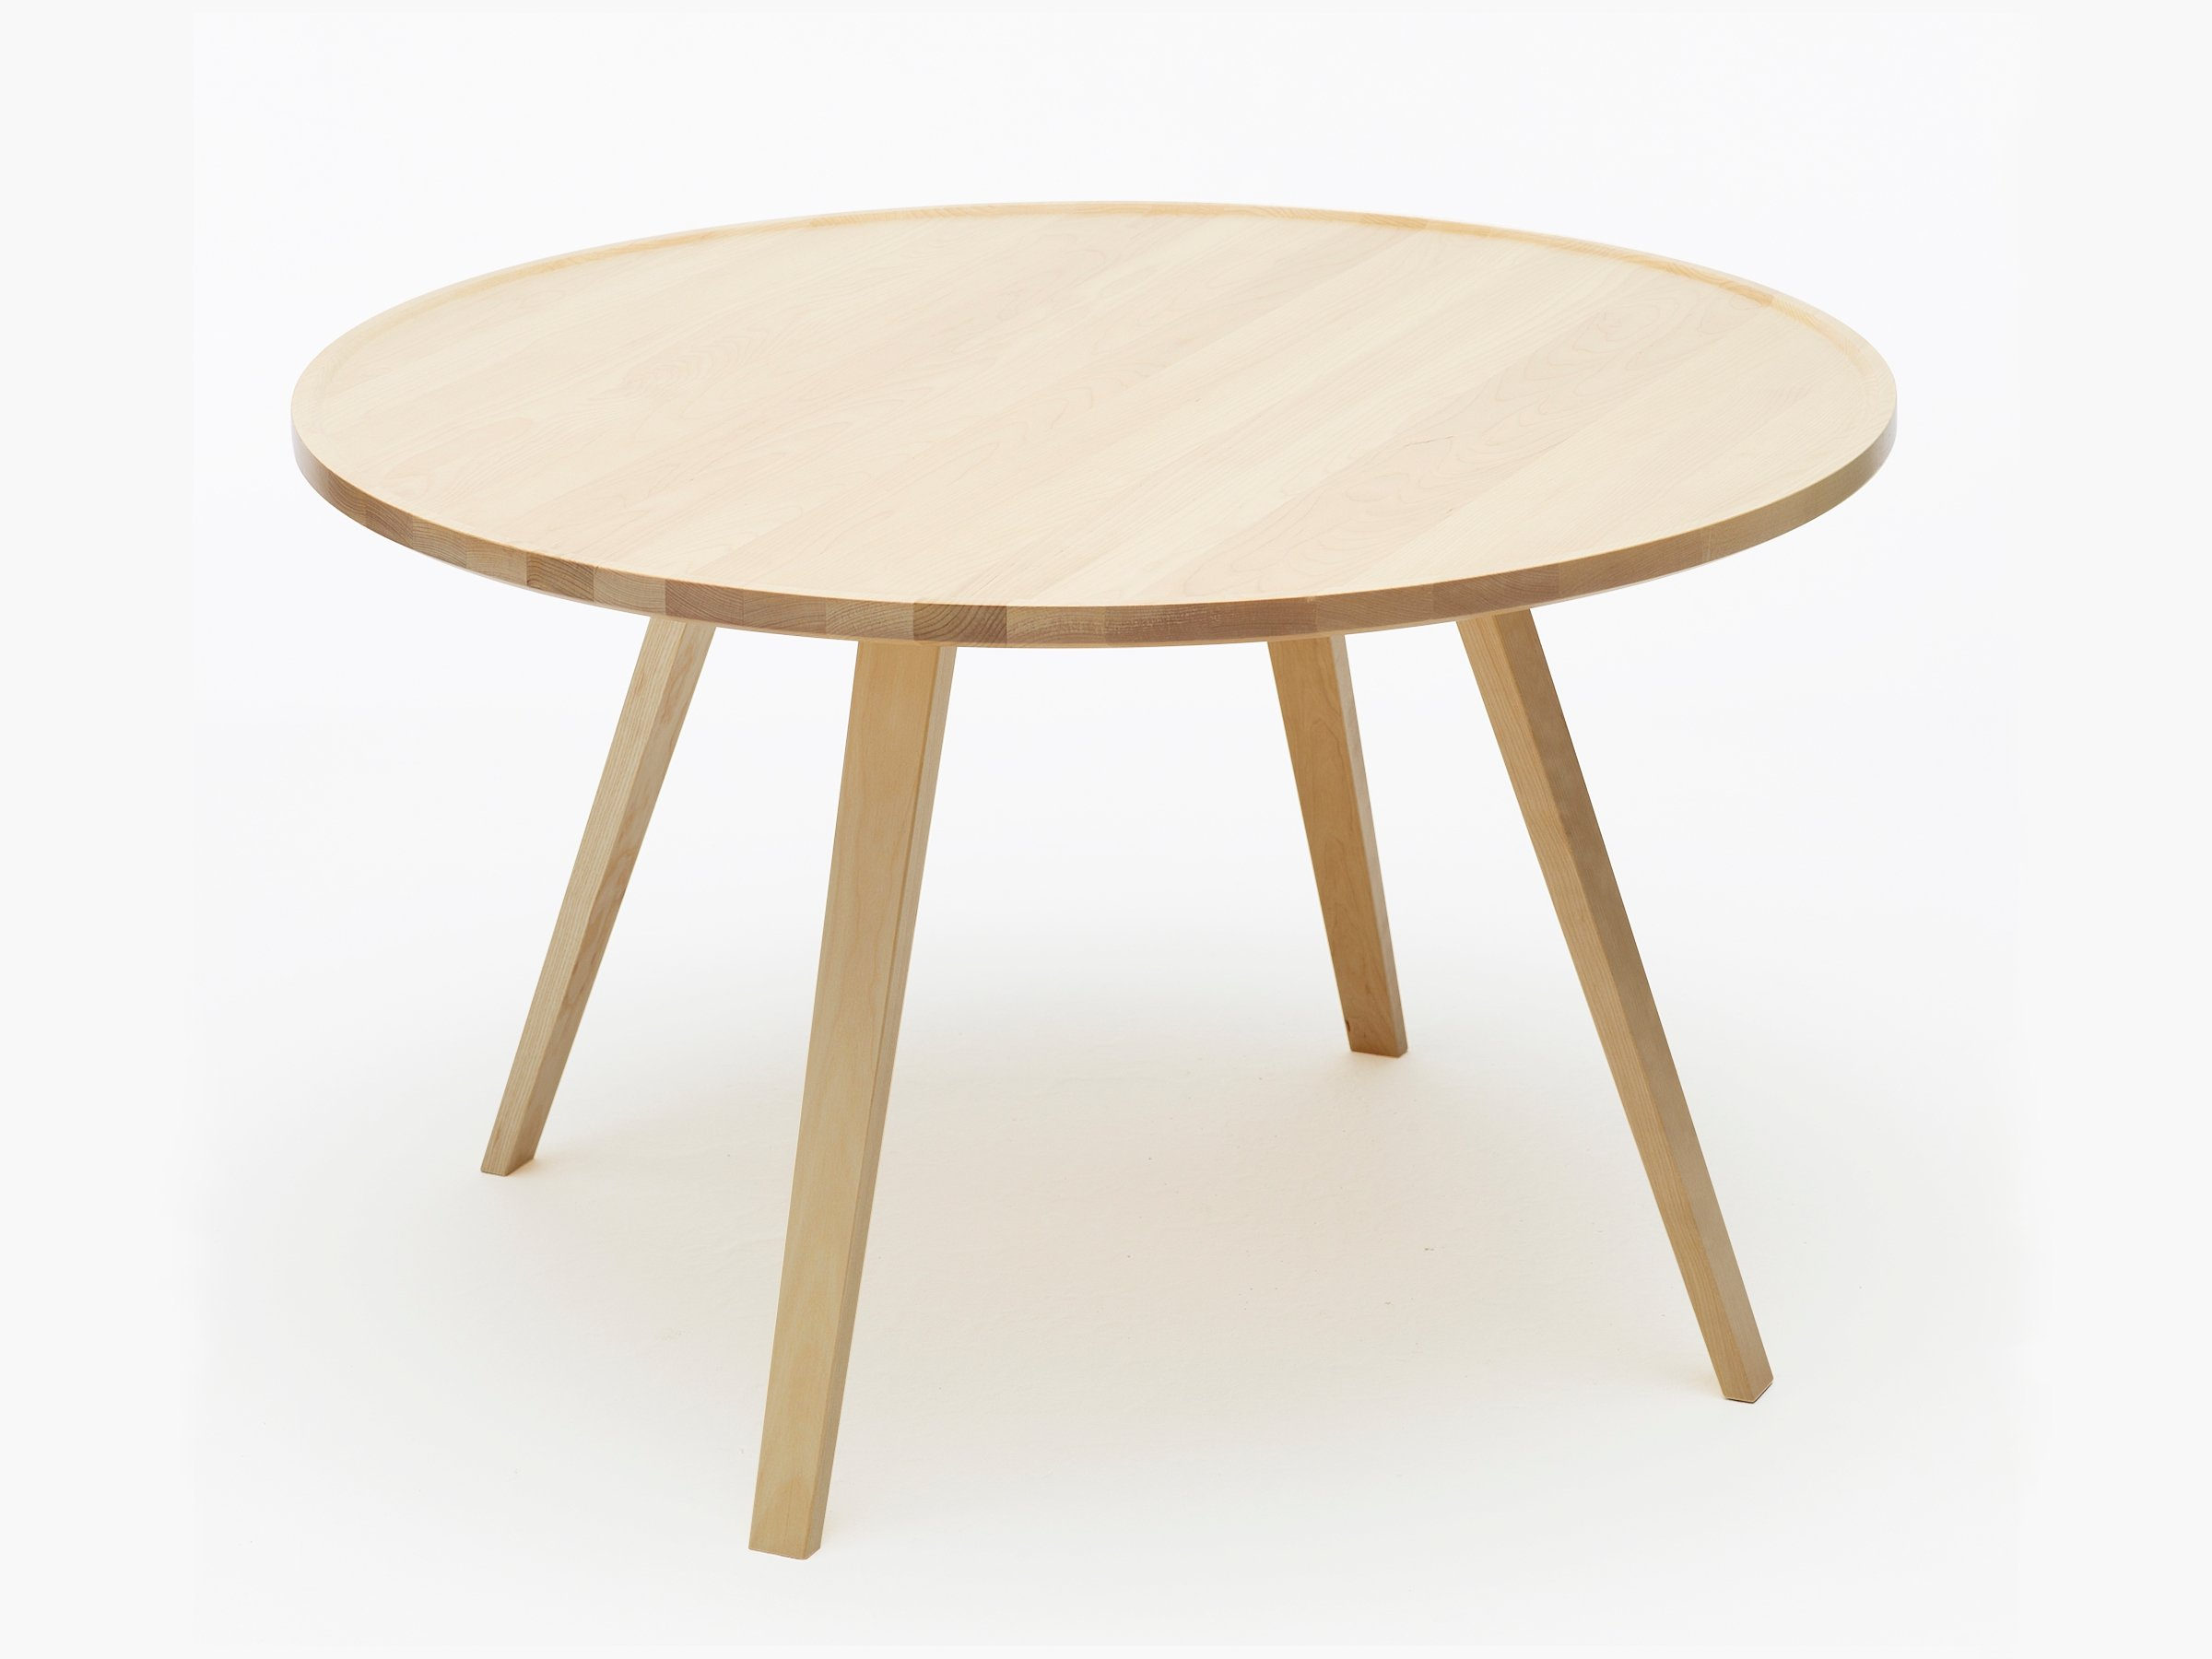 Mill table basse ronde by karl andersson s ner design - Table basse bois ronde ...